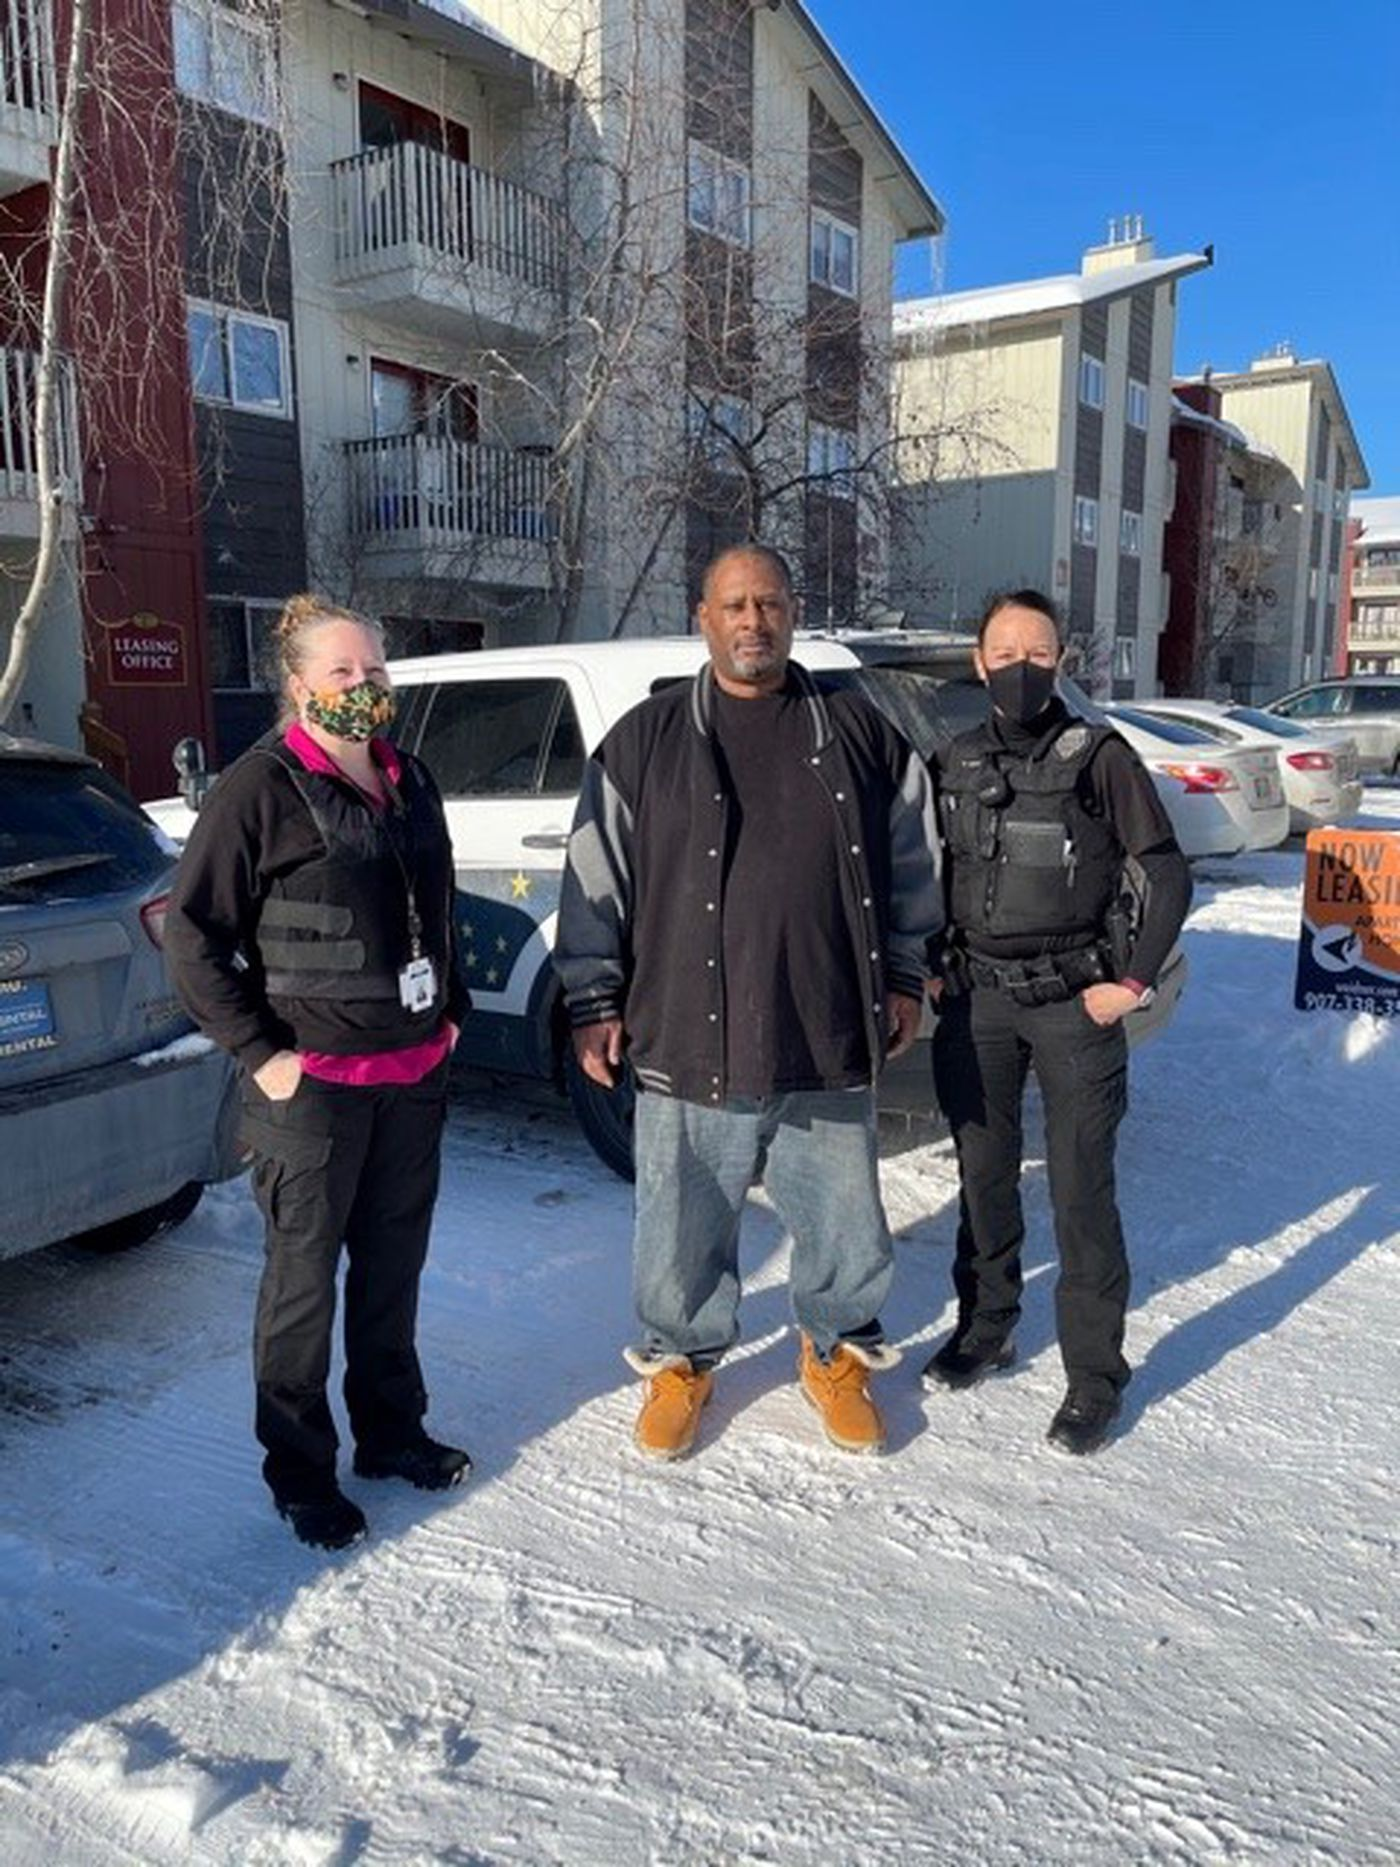 APD CIT Officer Ruth Adolf and Behavioral Health Counselor Tanya Vandenbos conducting some community outreach with Kareem Waugh - maintaining positive relationships helps community members feel connected and healthy. Photo Credit: Anchorage Police Department